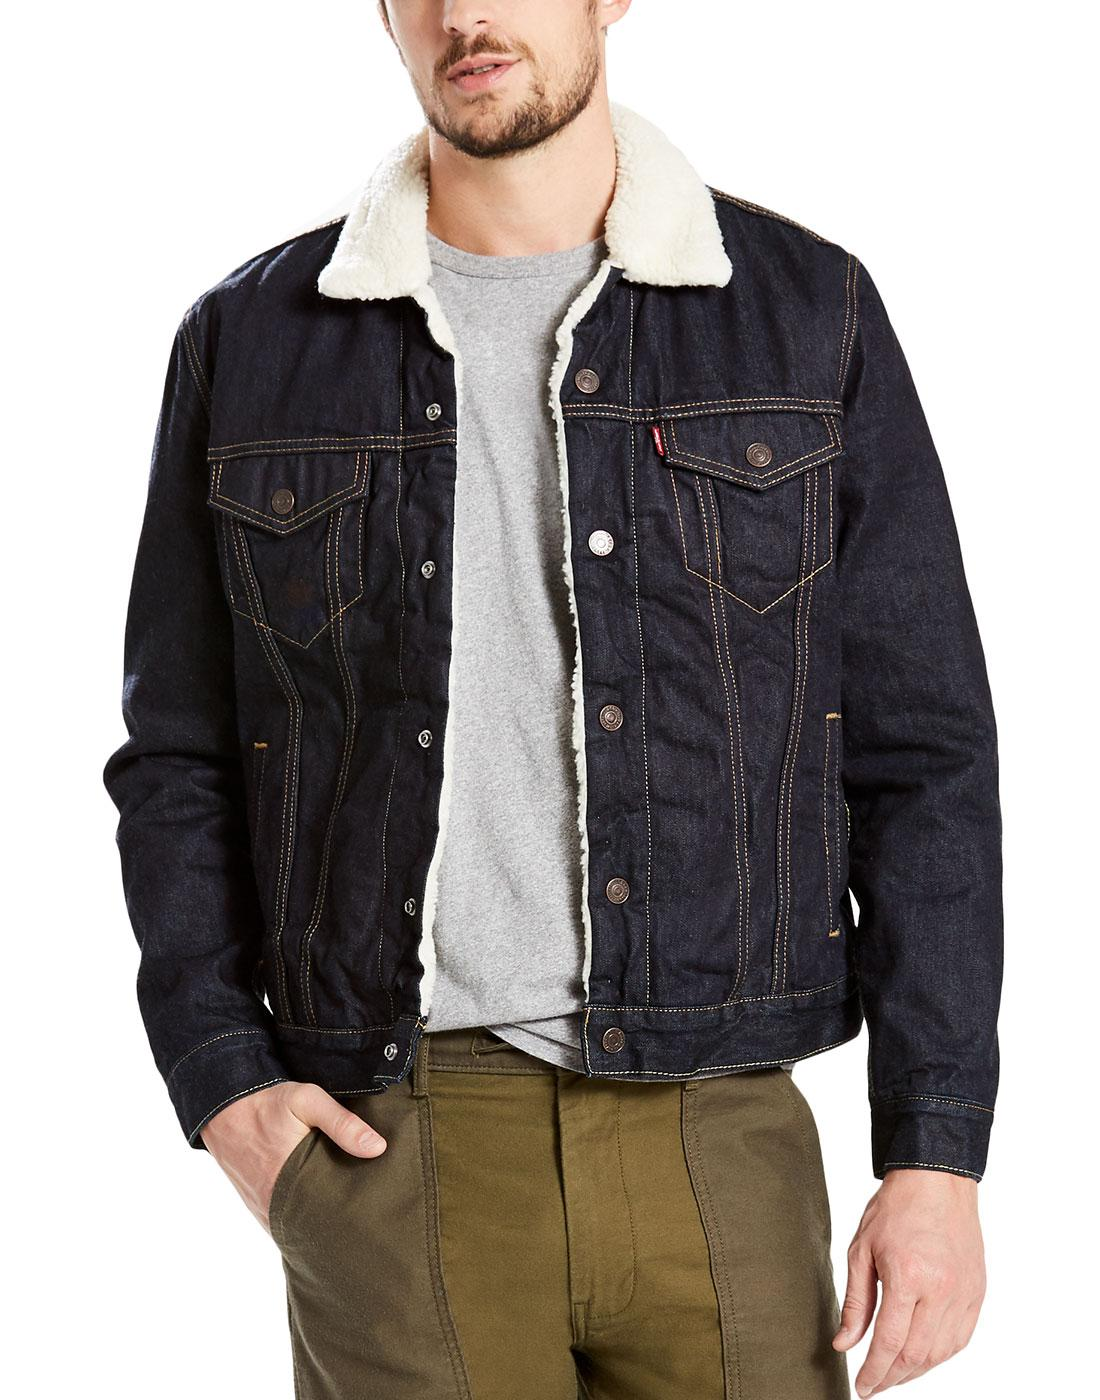 LEVI'S Type 3 Sherpa Mod Denim Trucker Jacket RP